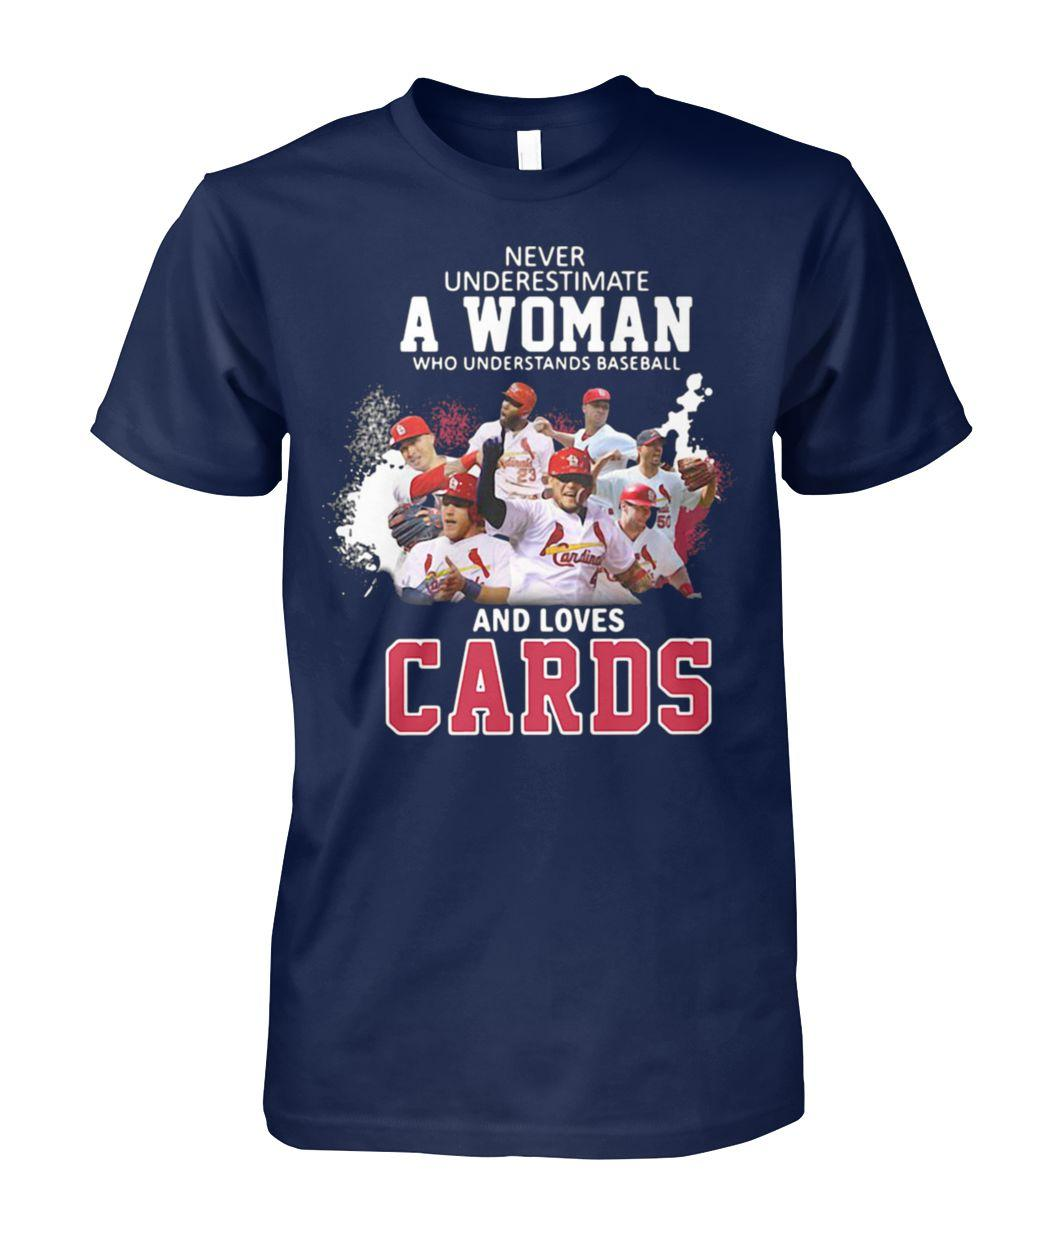 Never underestimate a woman who understands baseball and loves st louis cardinals shirt